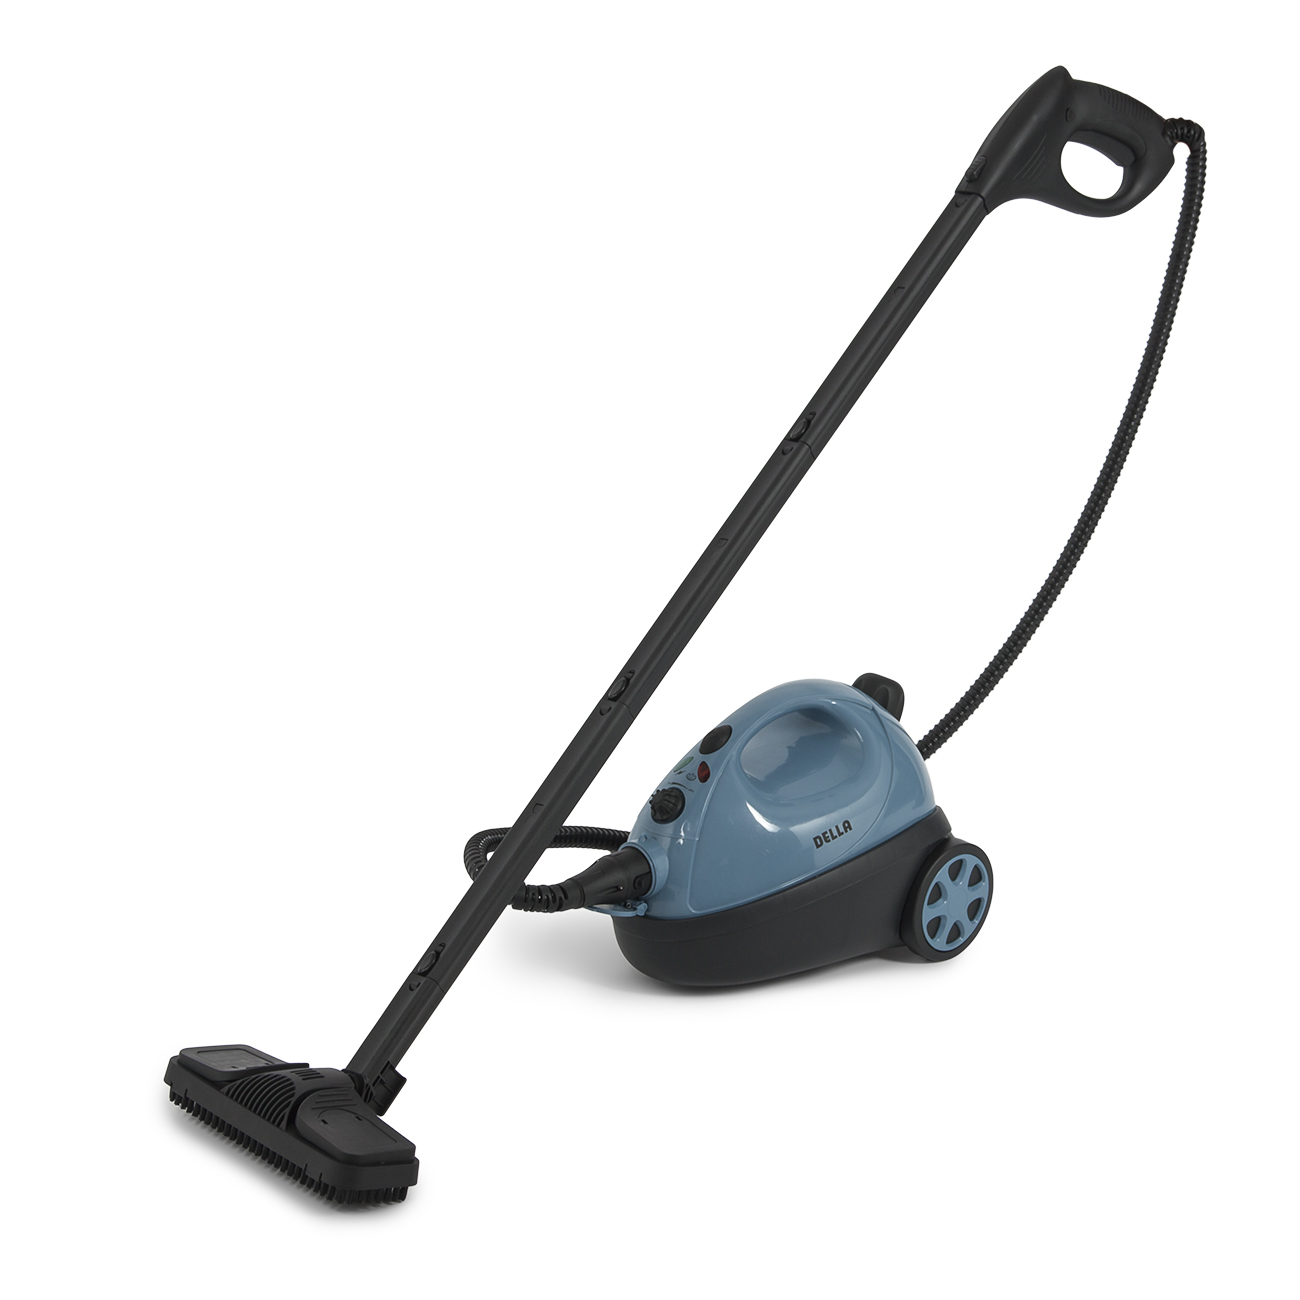 heavy duty canister steam cleaner floor carpet system portable clean cleaning ebay. Black Bedroom Furniture Sets. Home Design Ideas